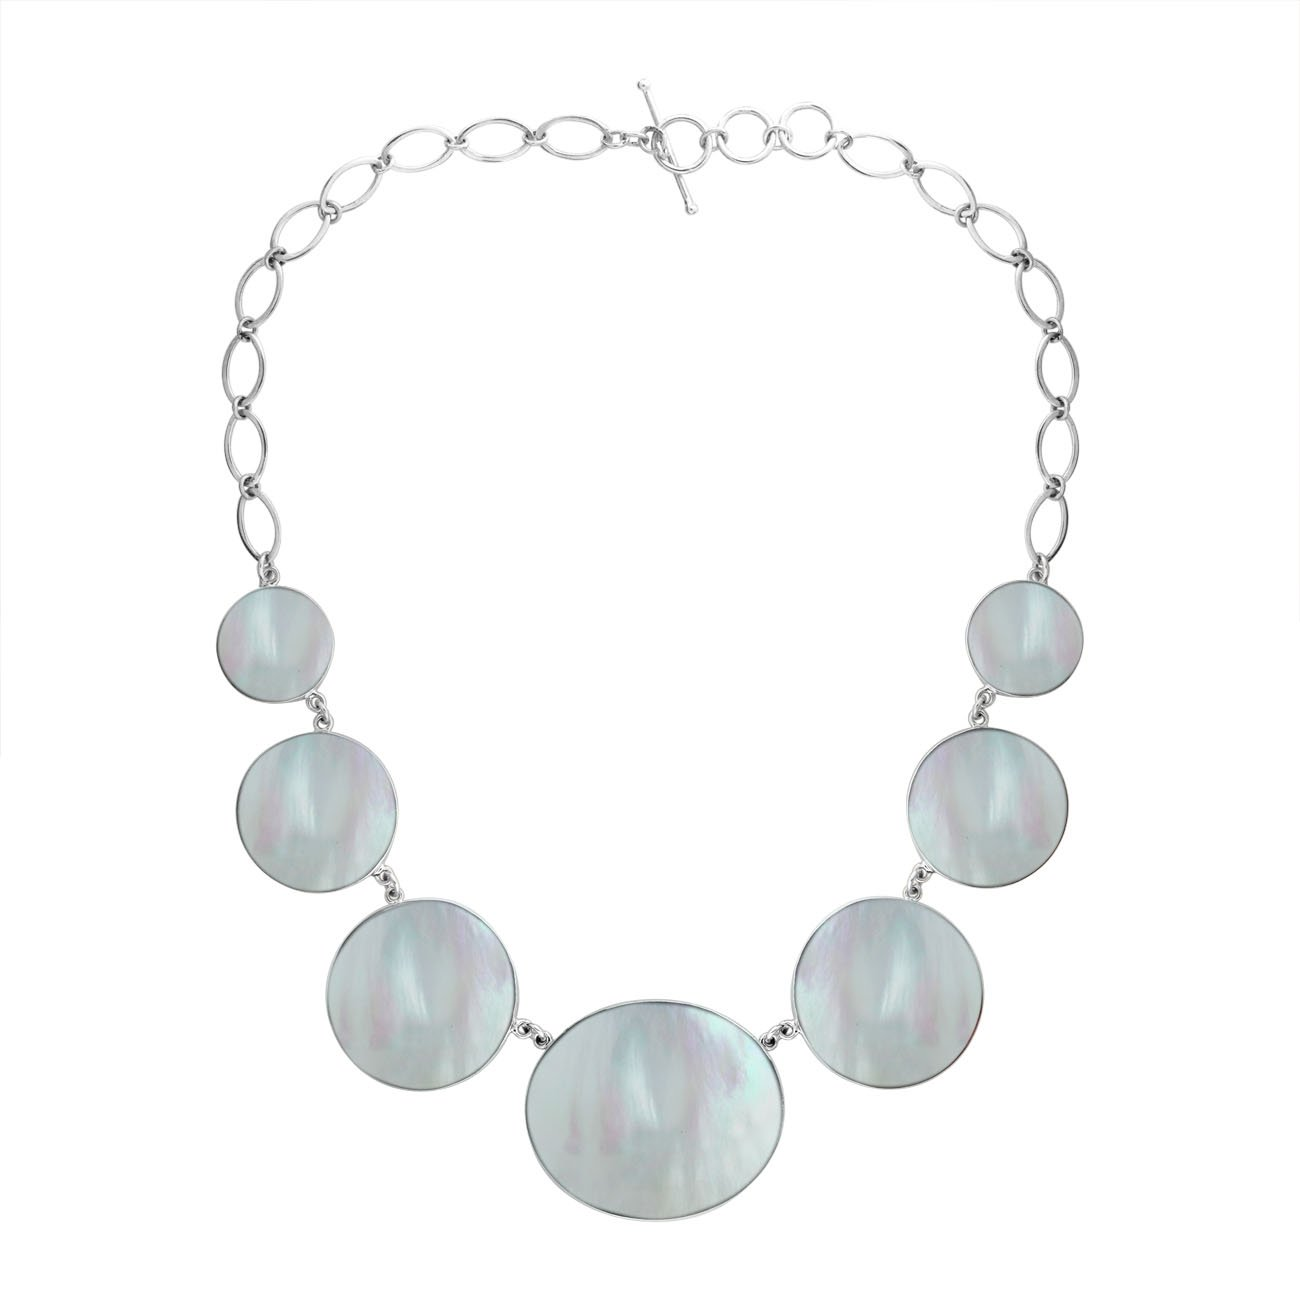 AN-1007-MOP Sterling Silver Necklace With Mother Of Pearl by Bali Designs